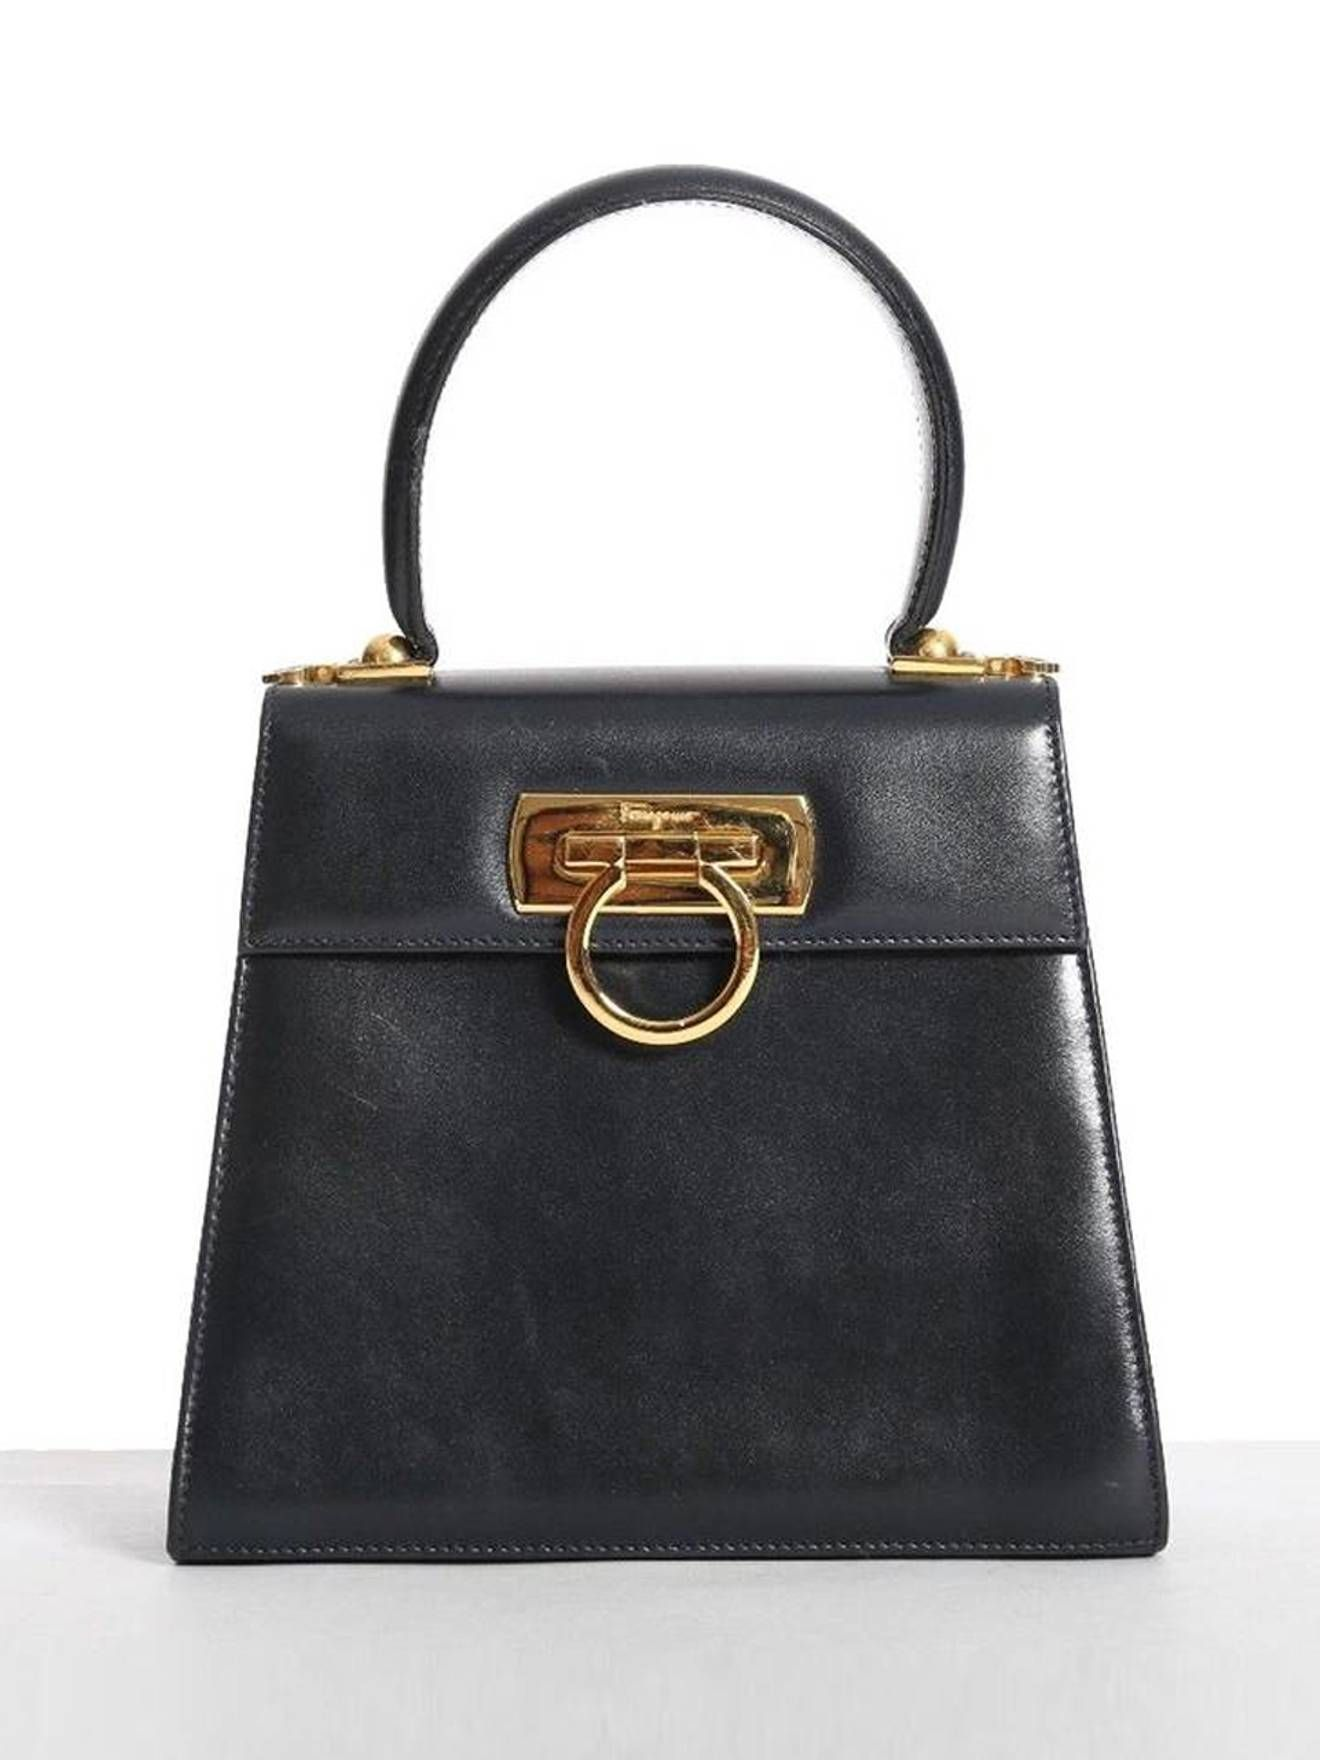 727b15fed4126b Ferragamo vintage SALVATORE FERRAGAMO Gancini Vara black leather gold  buckle structure bag Size One Size